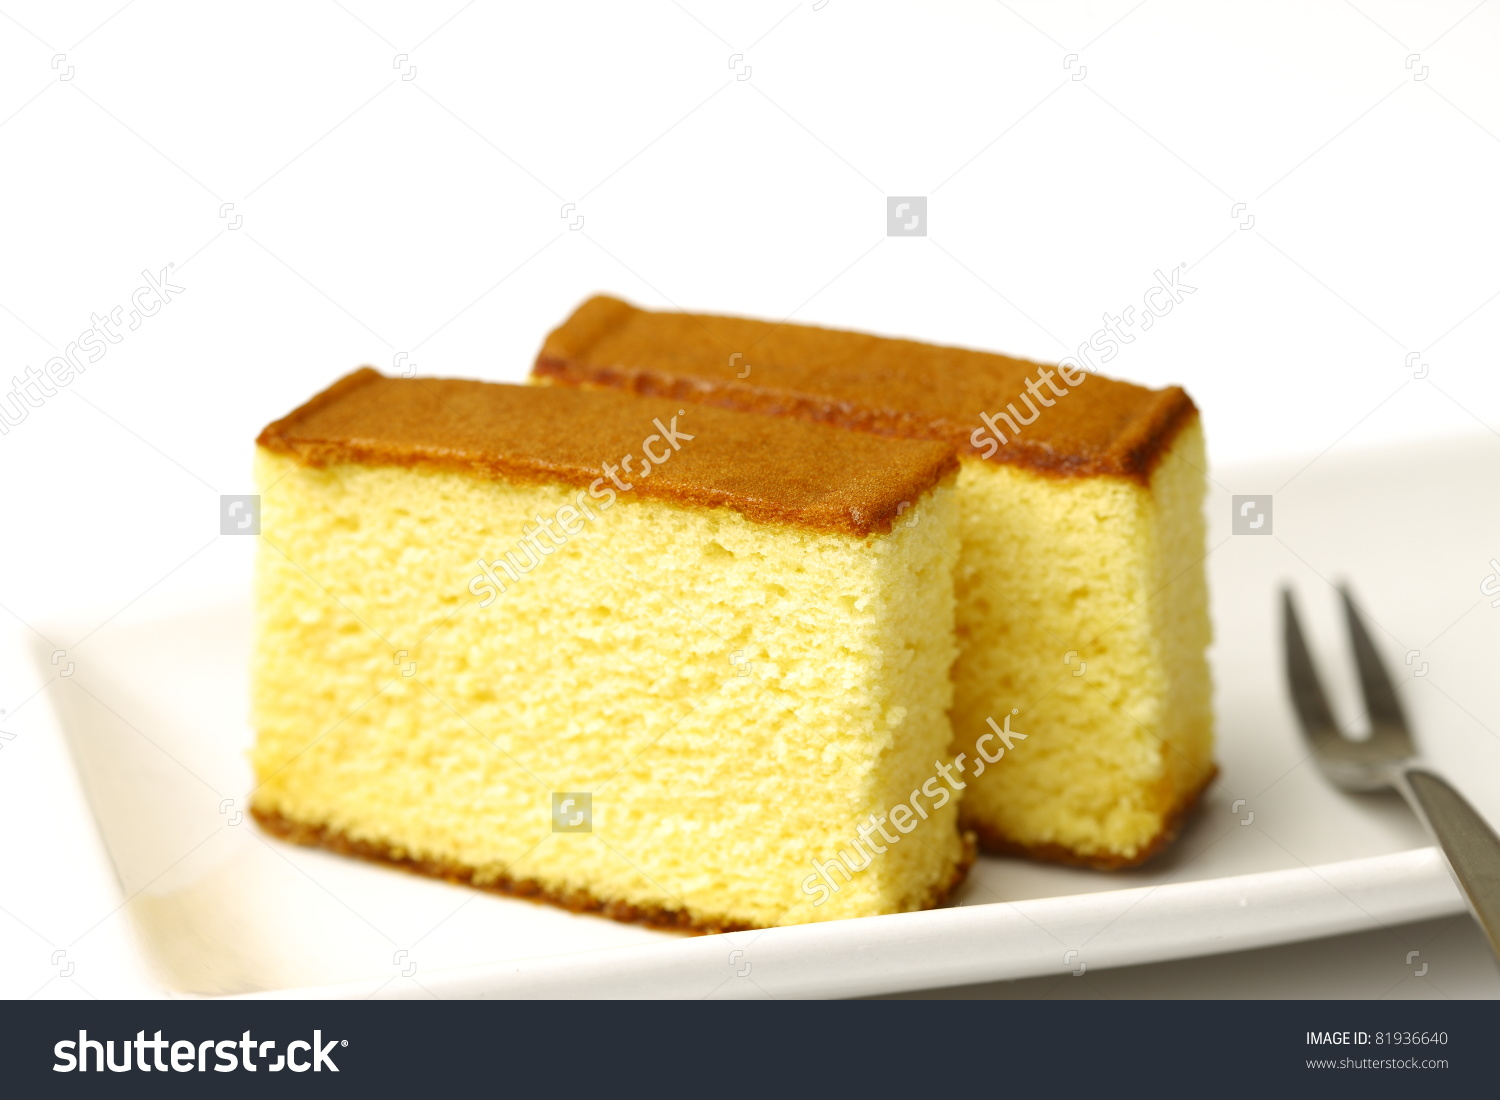 Japanese Sponge Cake,Castella Stock Photo 81936640 : Shutterstock.